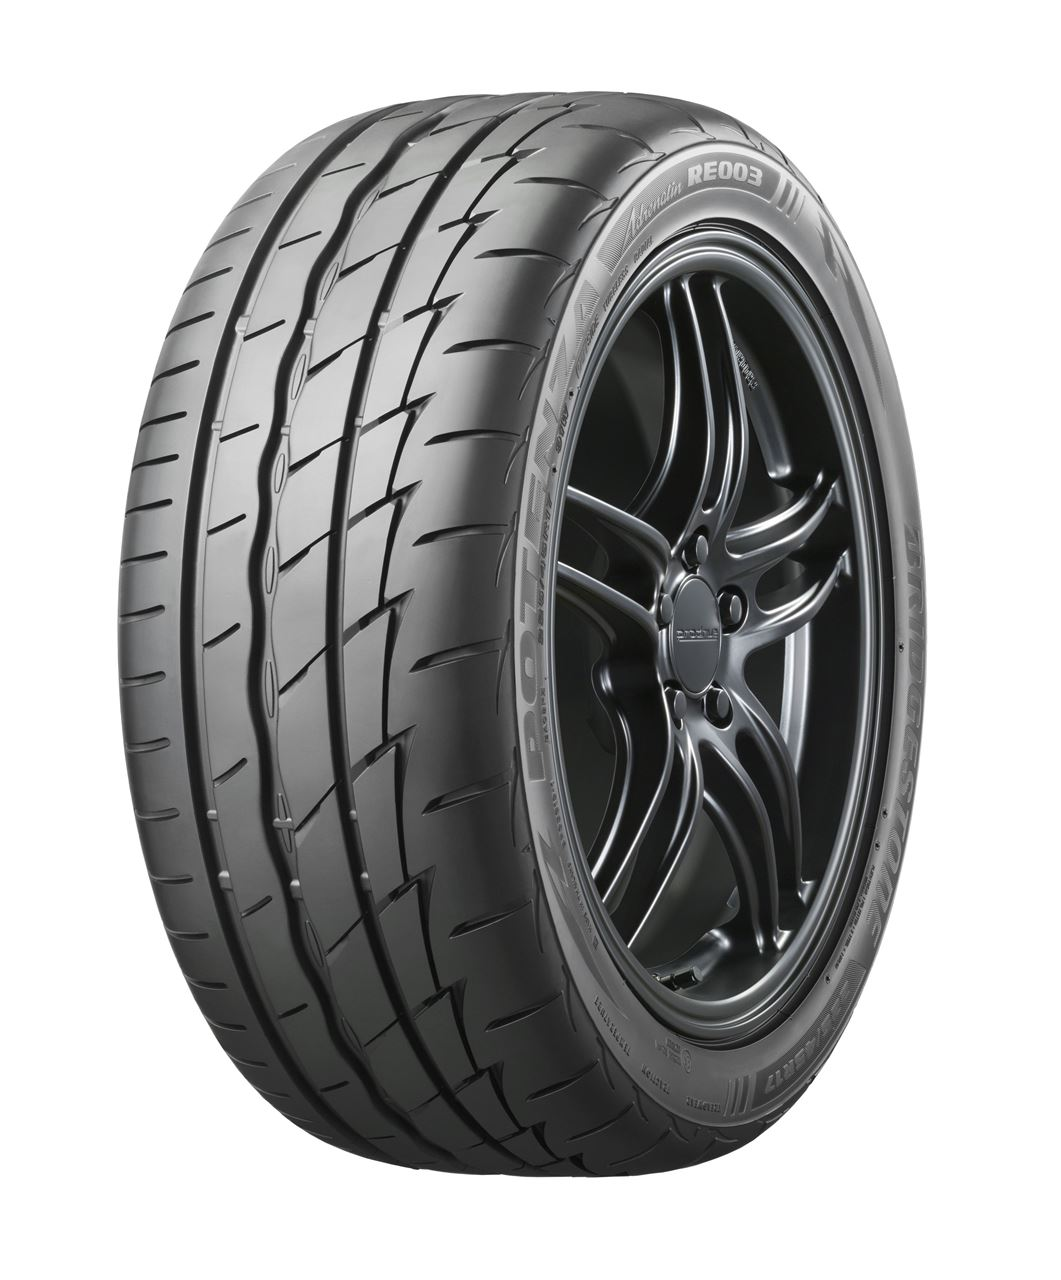 BRIDGESTONE RE 003 POTENZA ADRENALIN 235/45 R17 94W